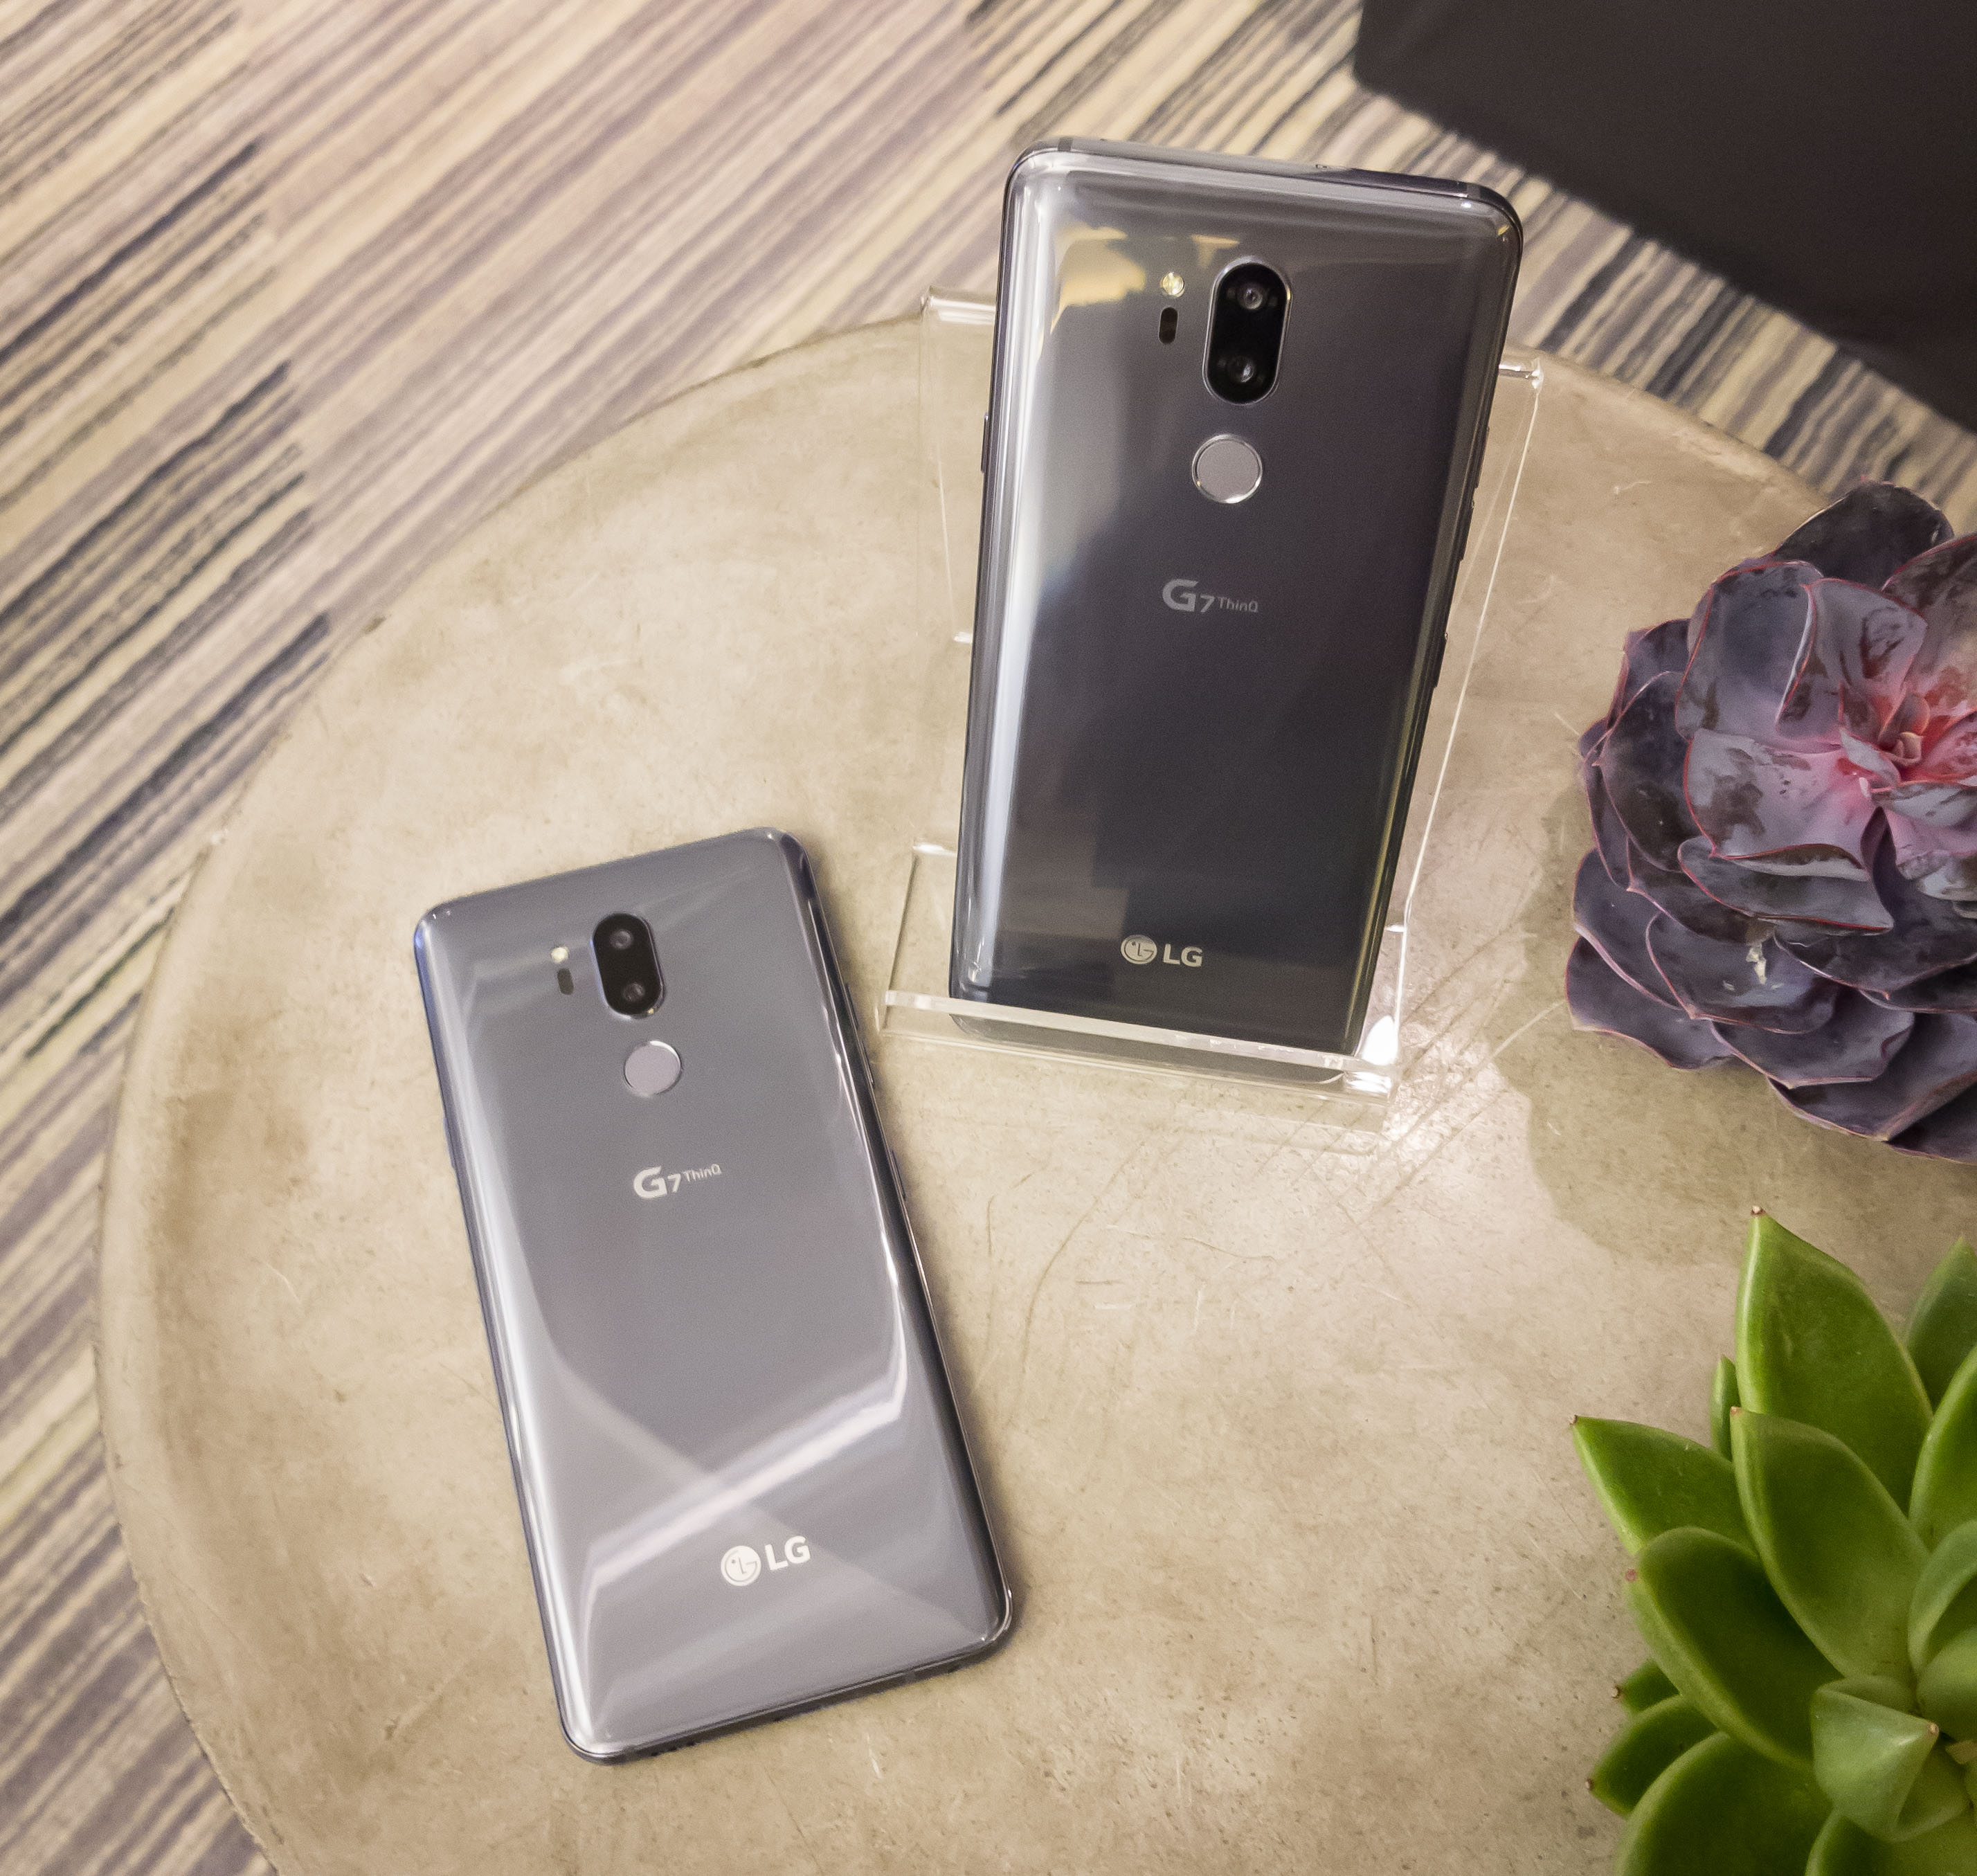 LG Announces The G7 ThinQ